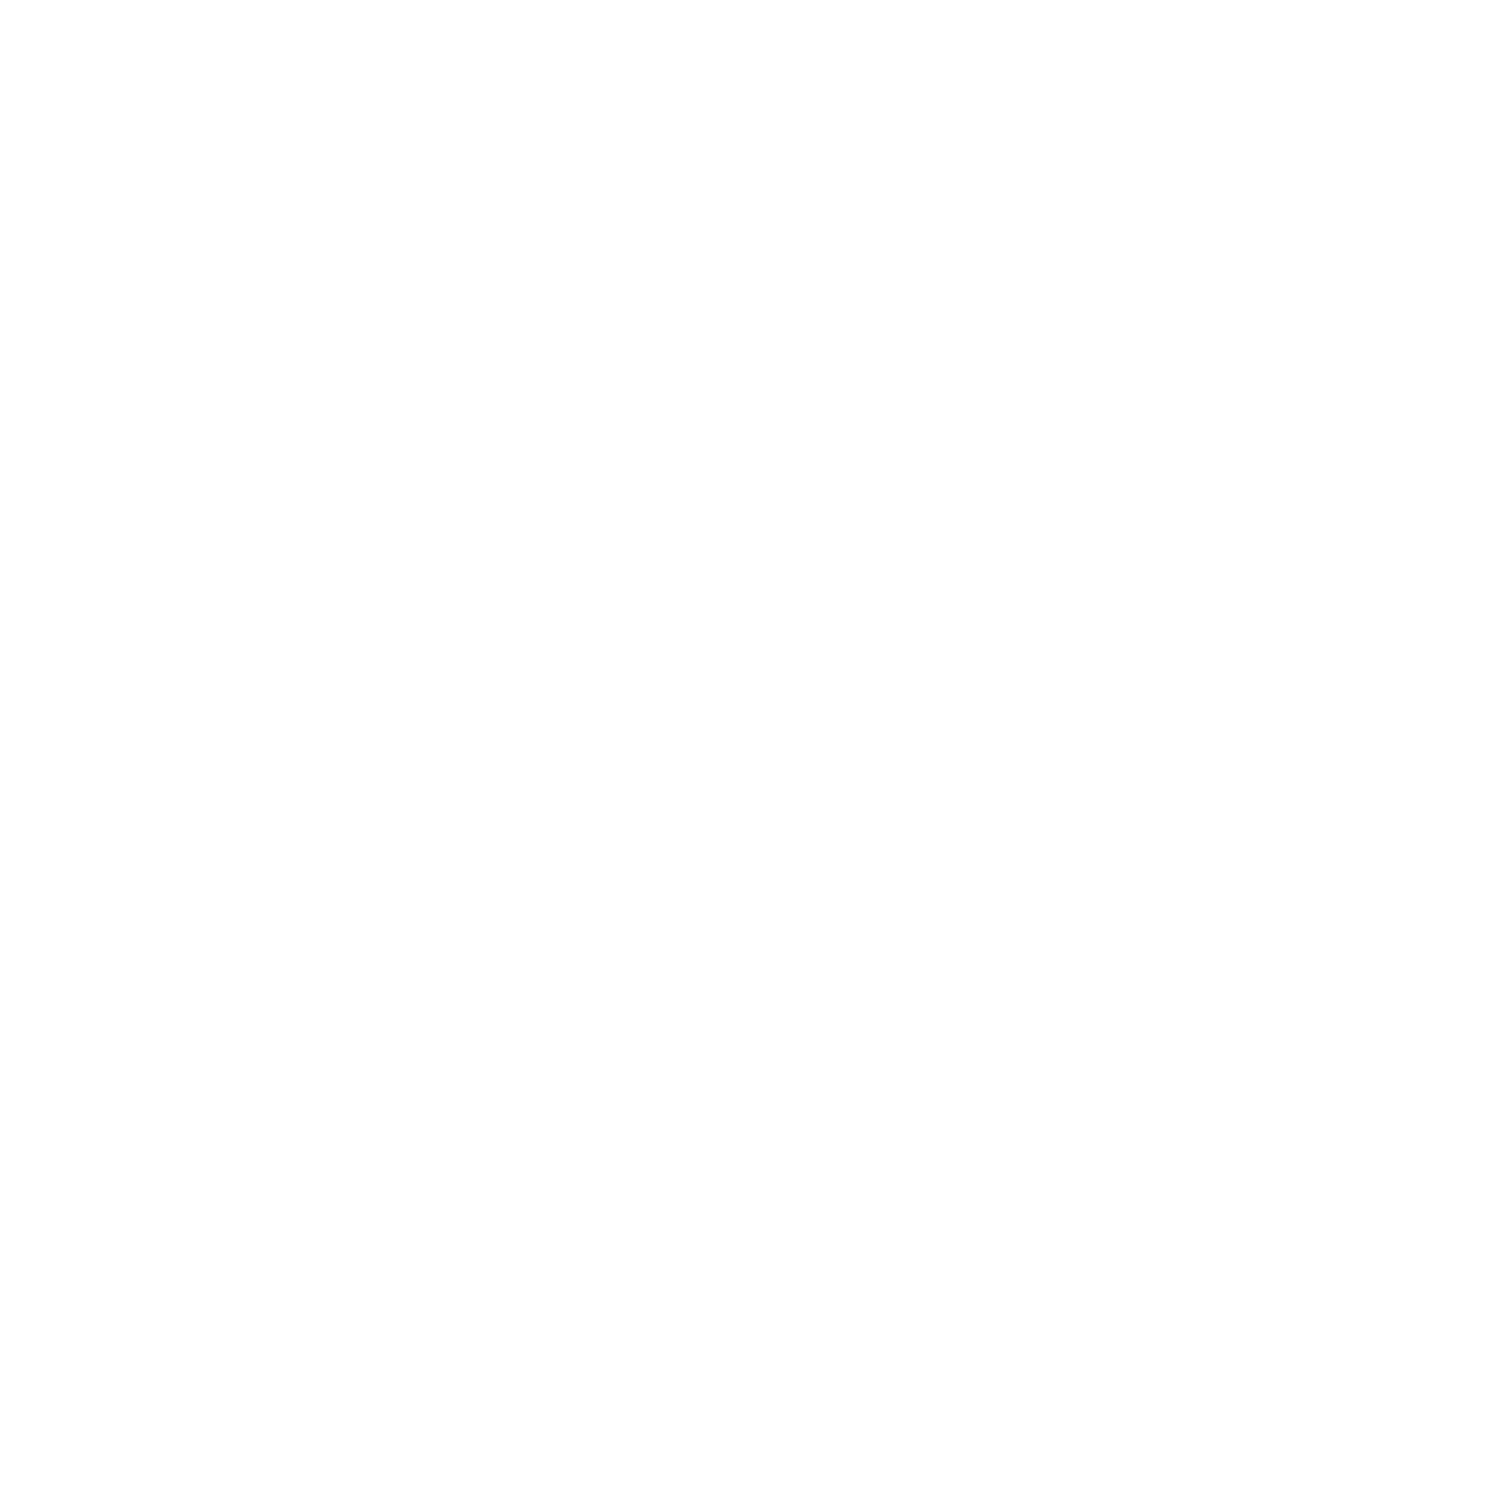 Saigon Diamond